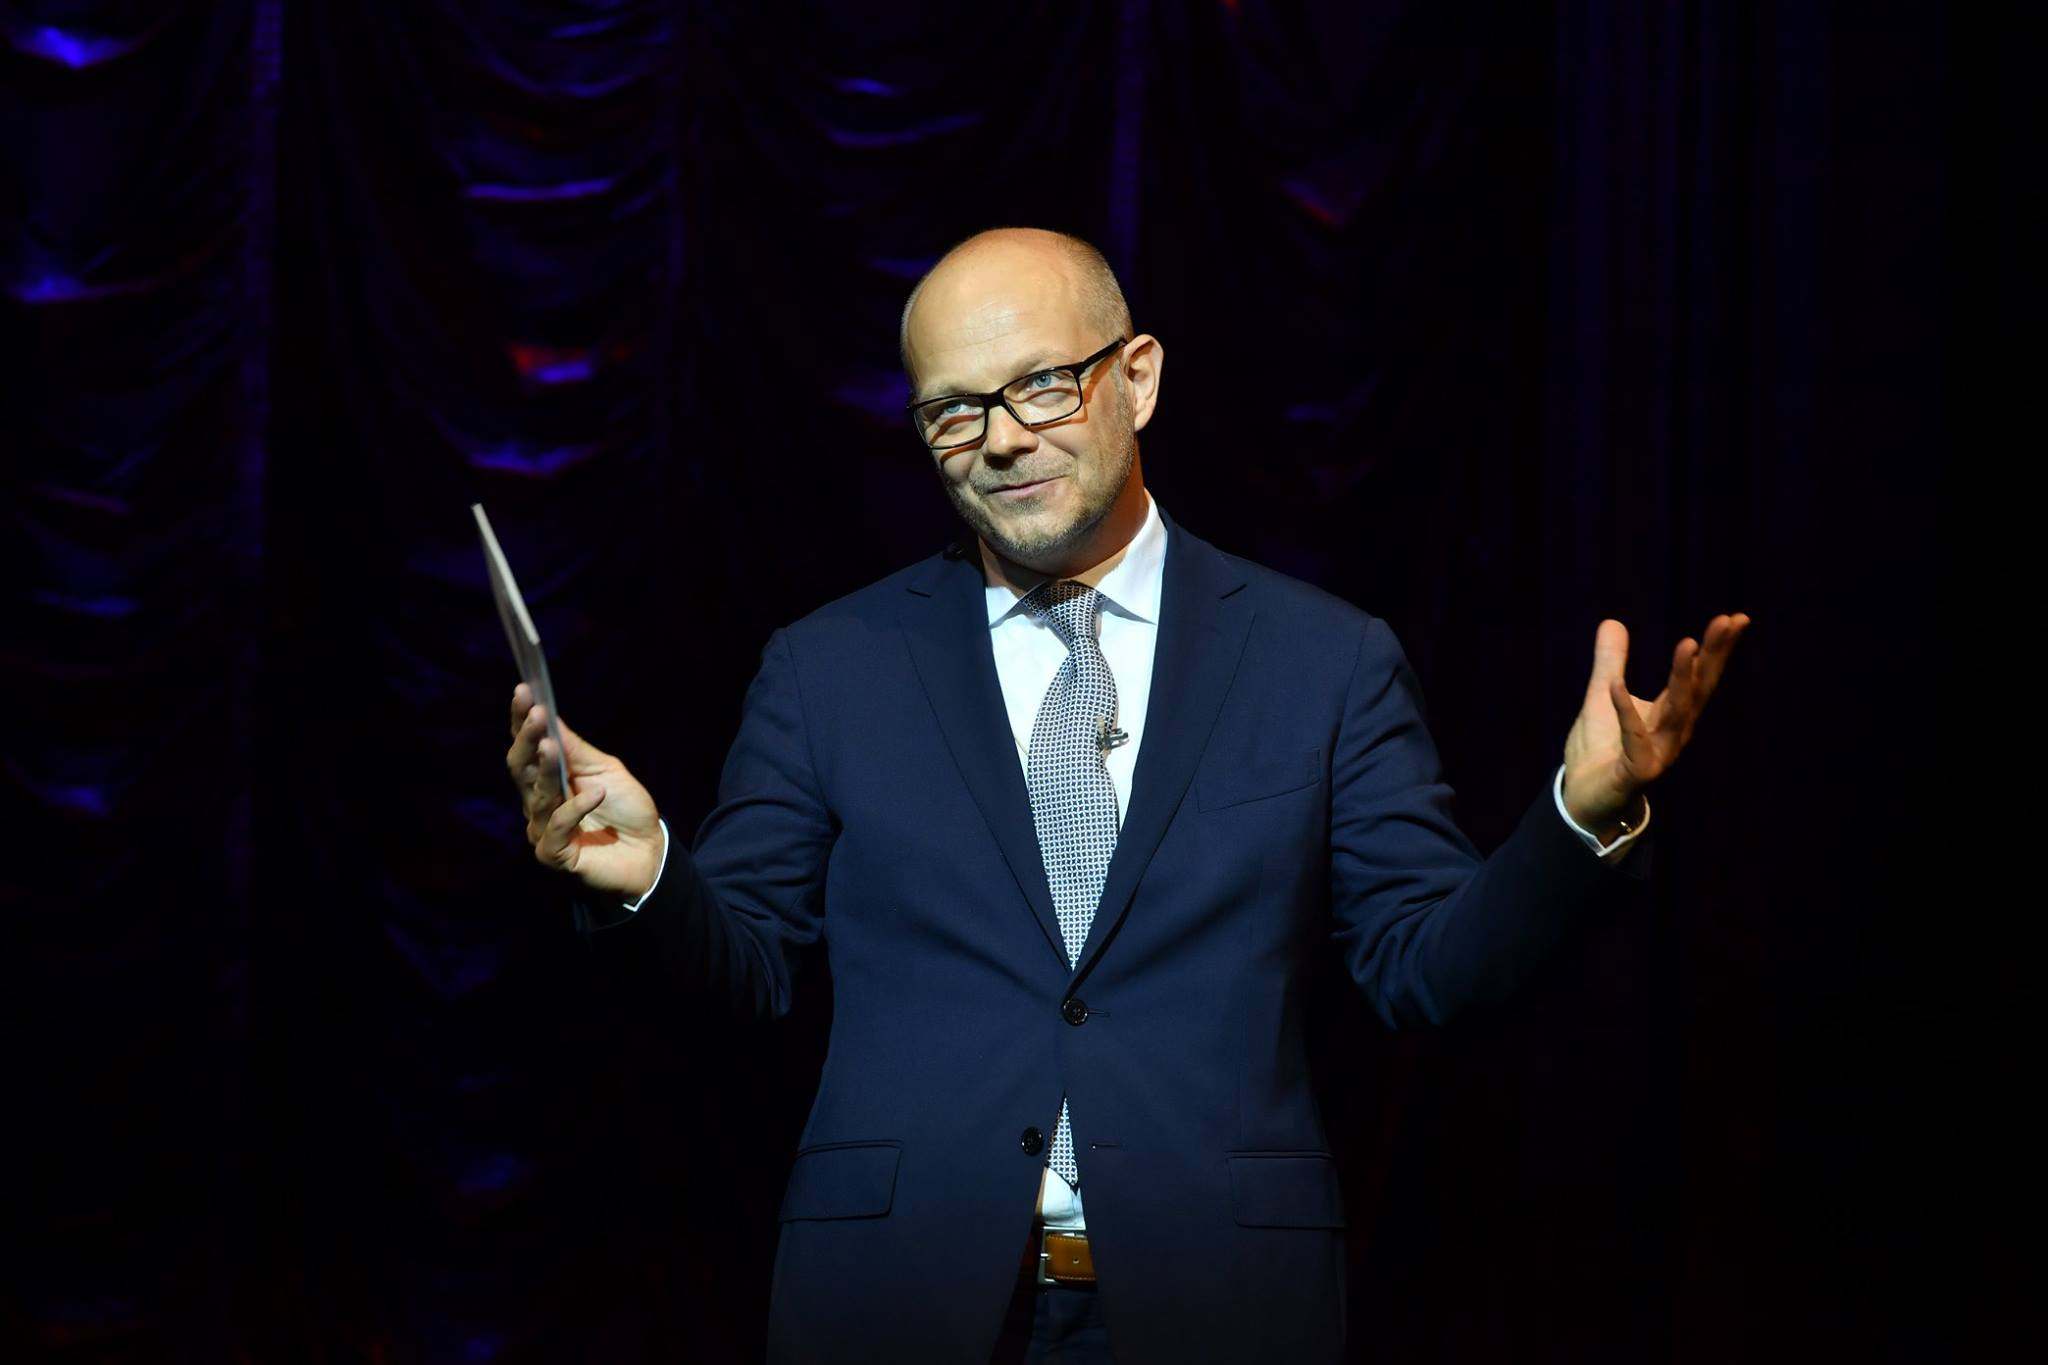 The director of the Budapest Operetta Theater, György Lőrinczy, welcoming the guests to the new Imre Kálmán Theatre. (Photó: Budapesti Operettszínház)